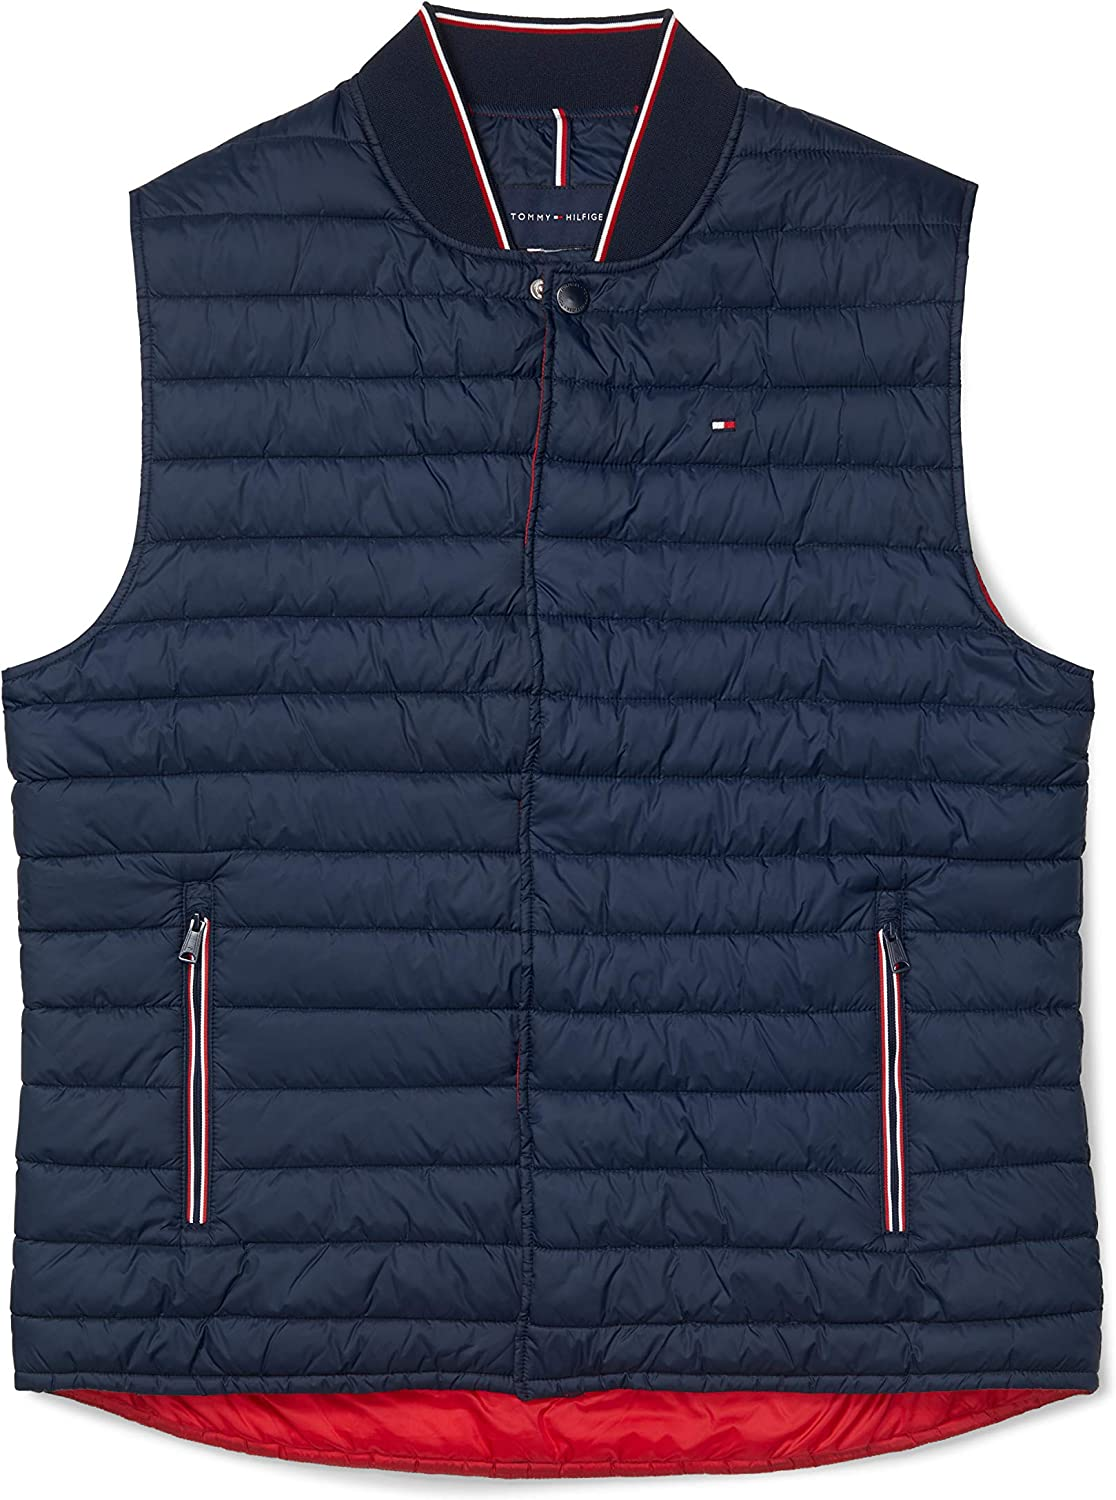 Tommy Hilfiger Men's Adaptive Insulator Vest with Magnetic Zipper